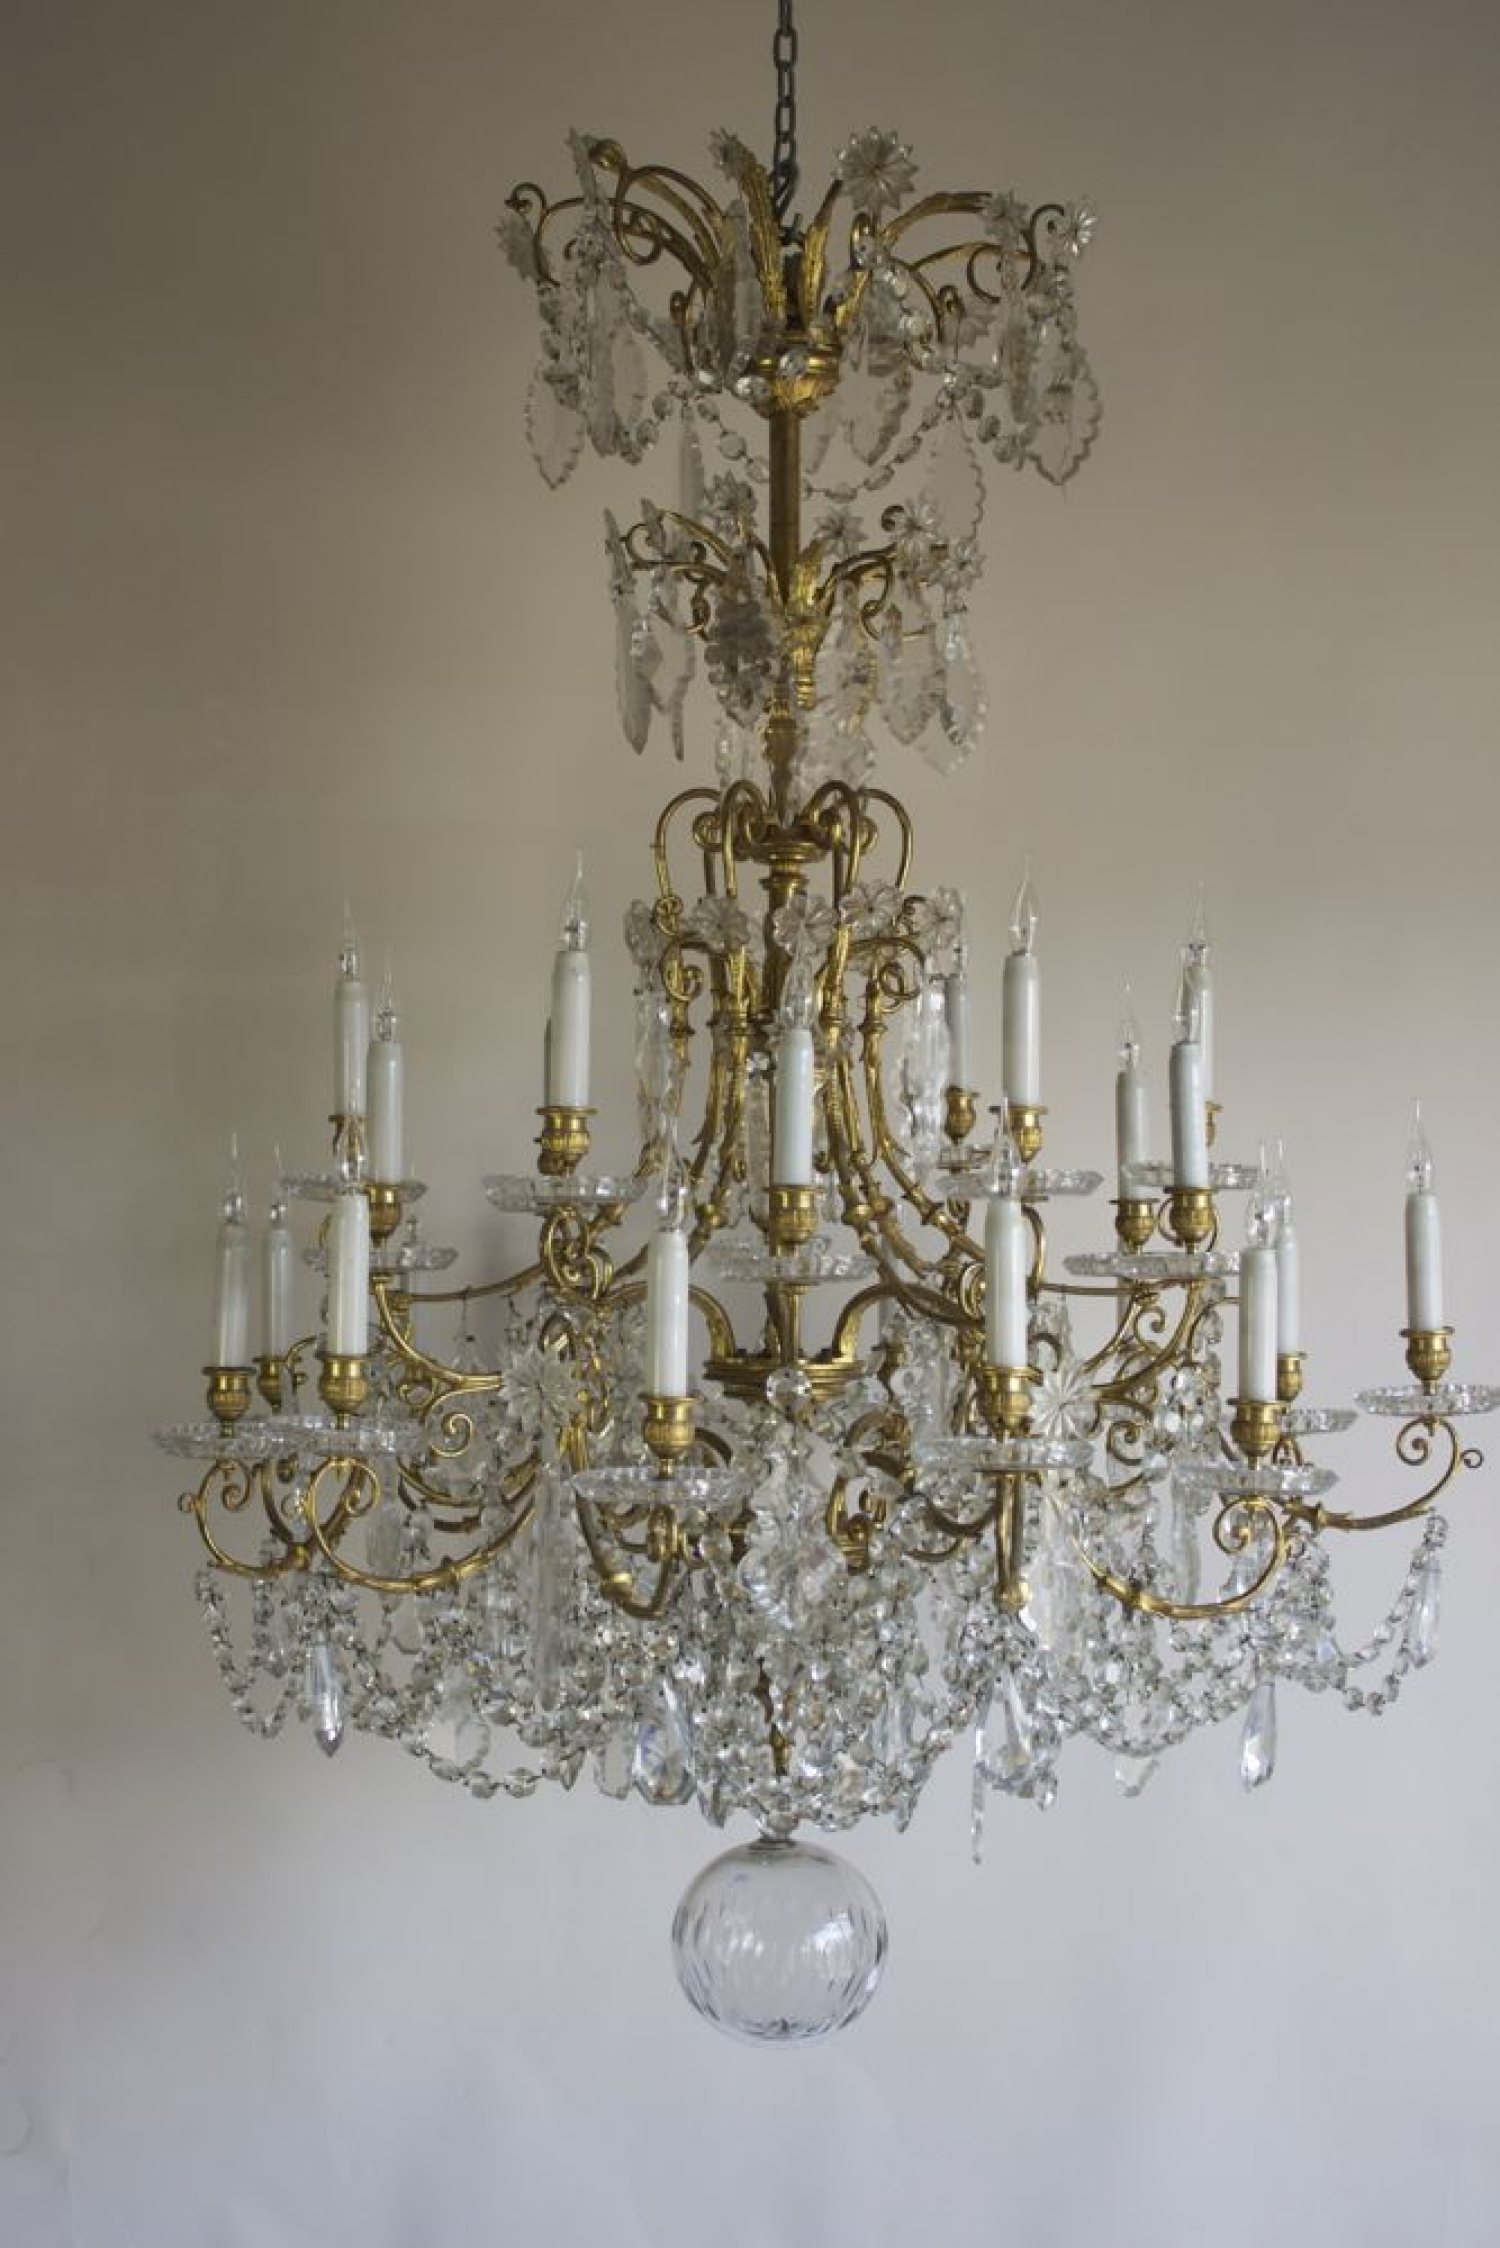 Antique Baccarat Chandelier - image 2 - Antique Baccarat Chandelier - Norfolk Decorative Antiques